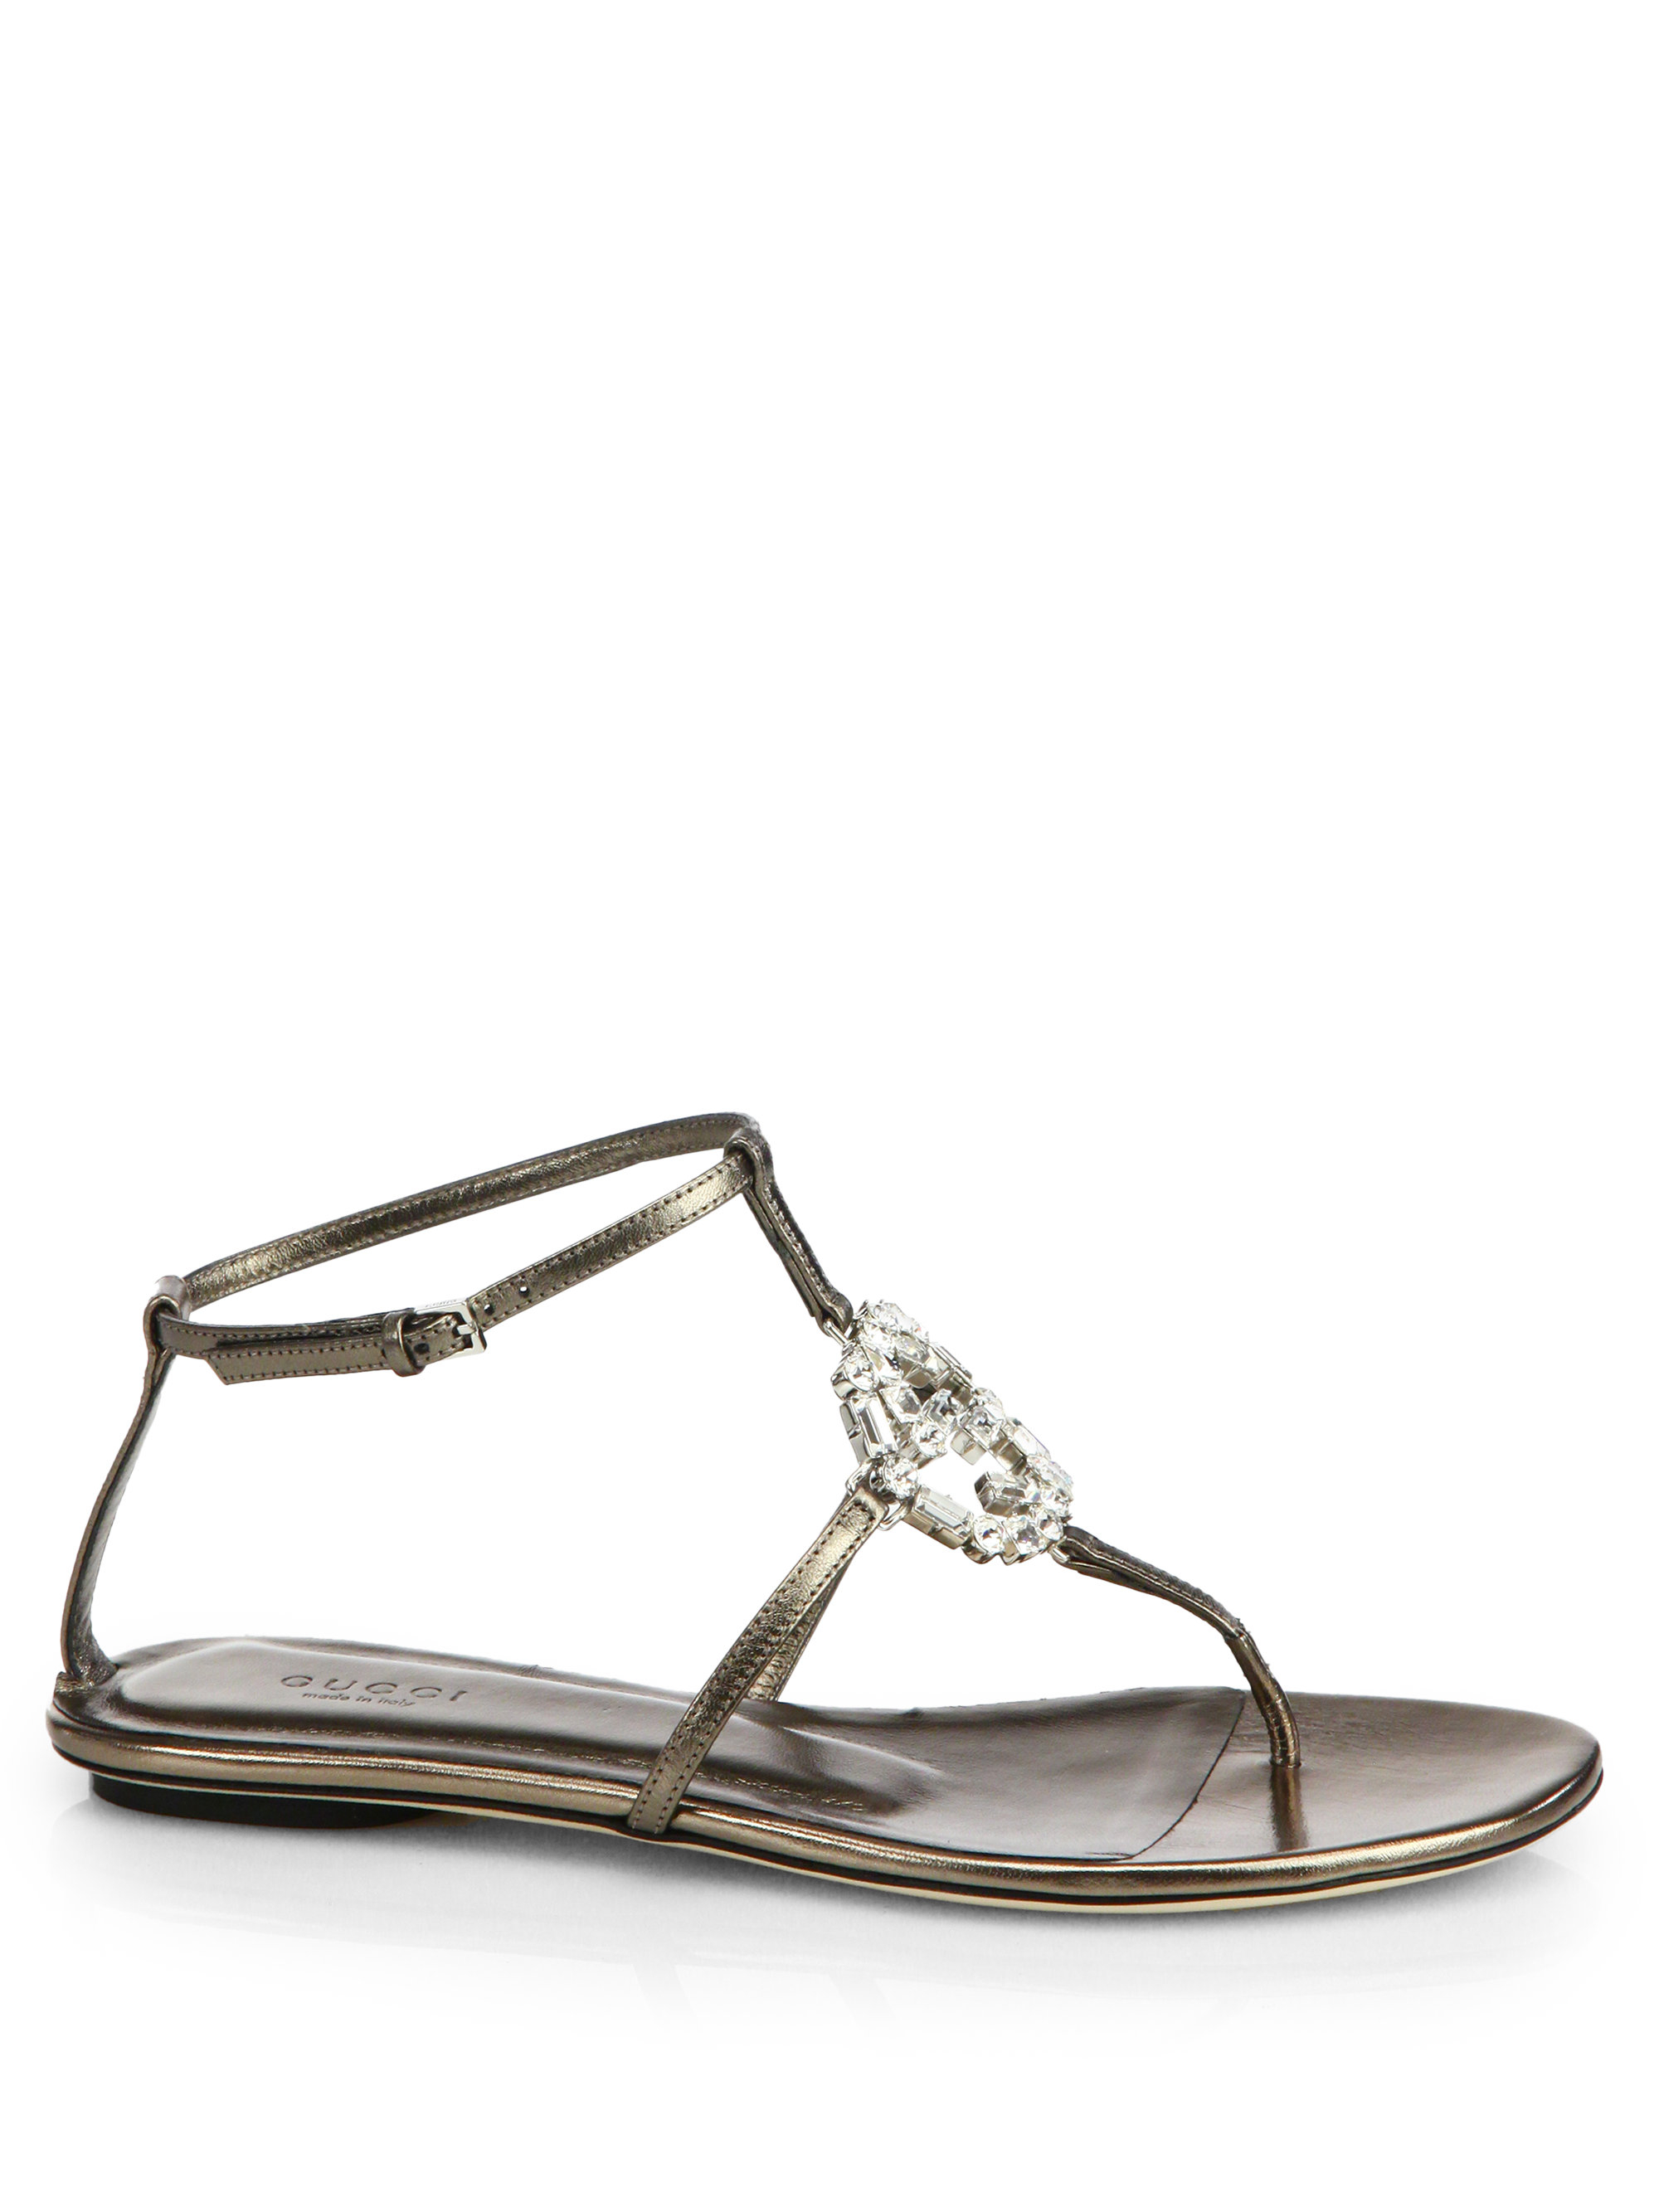 a8488c3df Gucci GG Crystal Leather Sandals in Metallic - Lyst